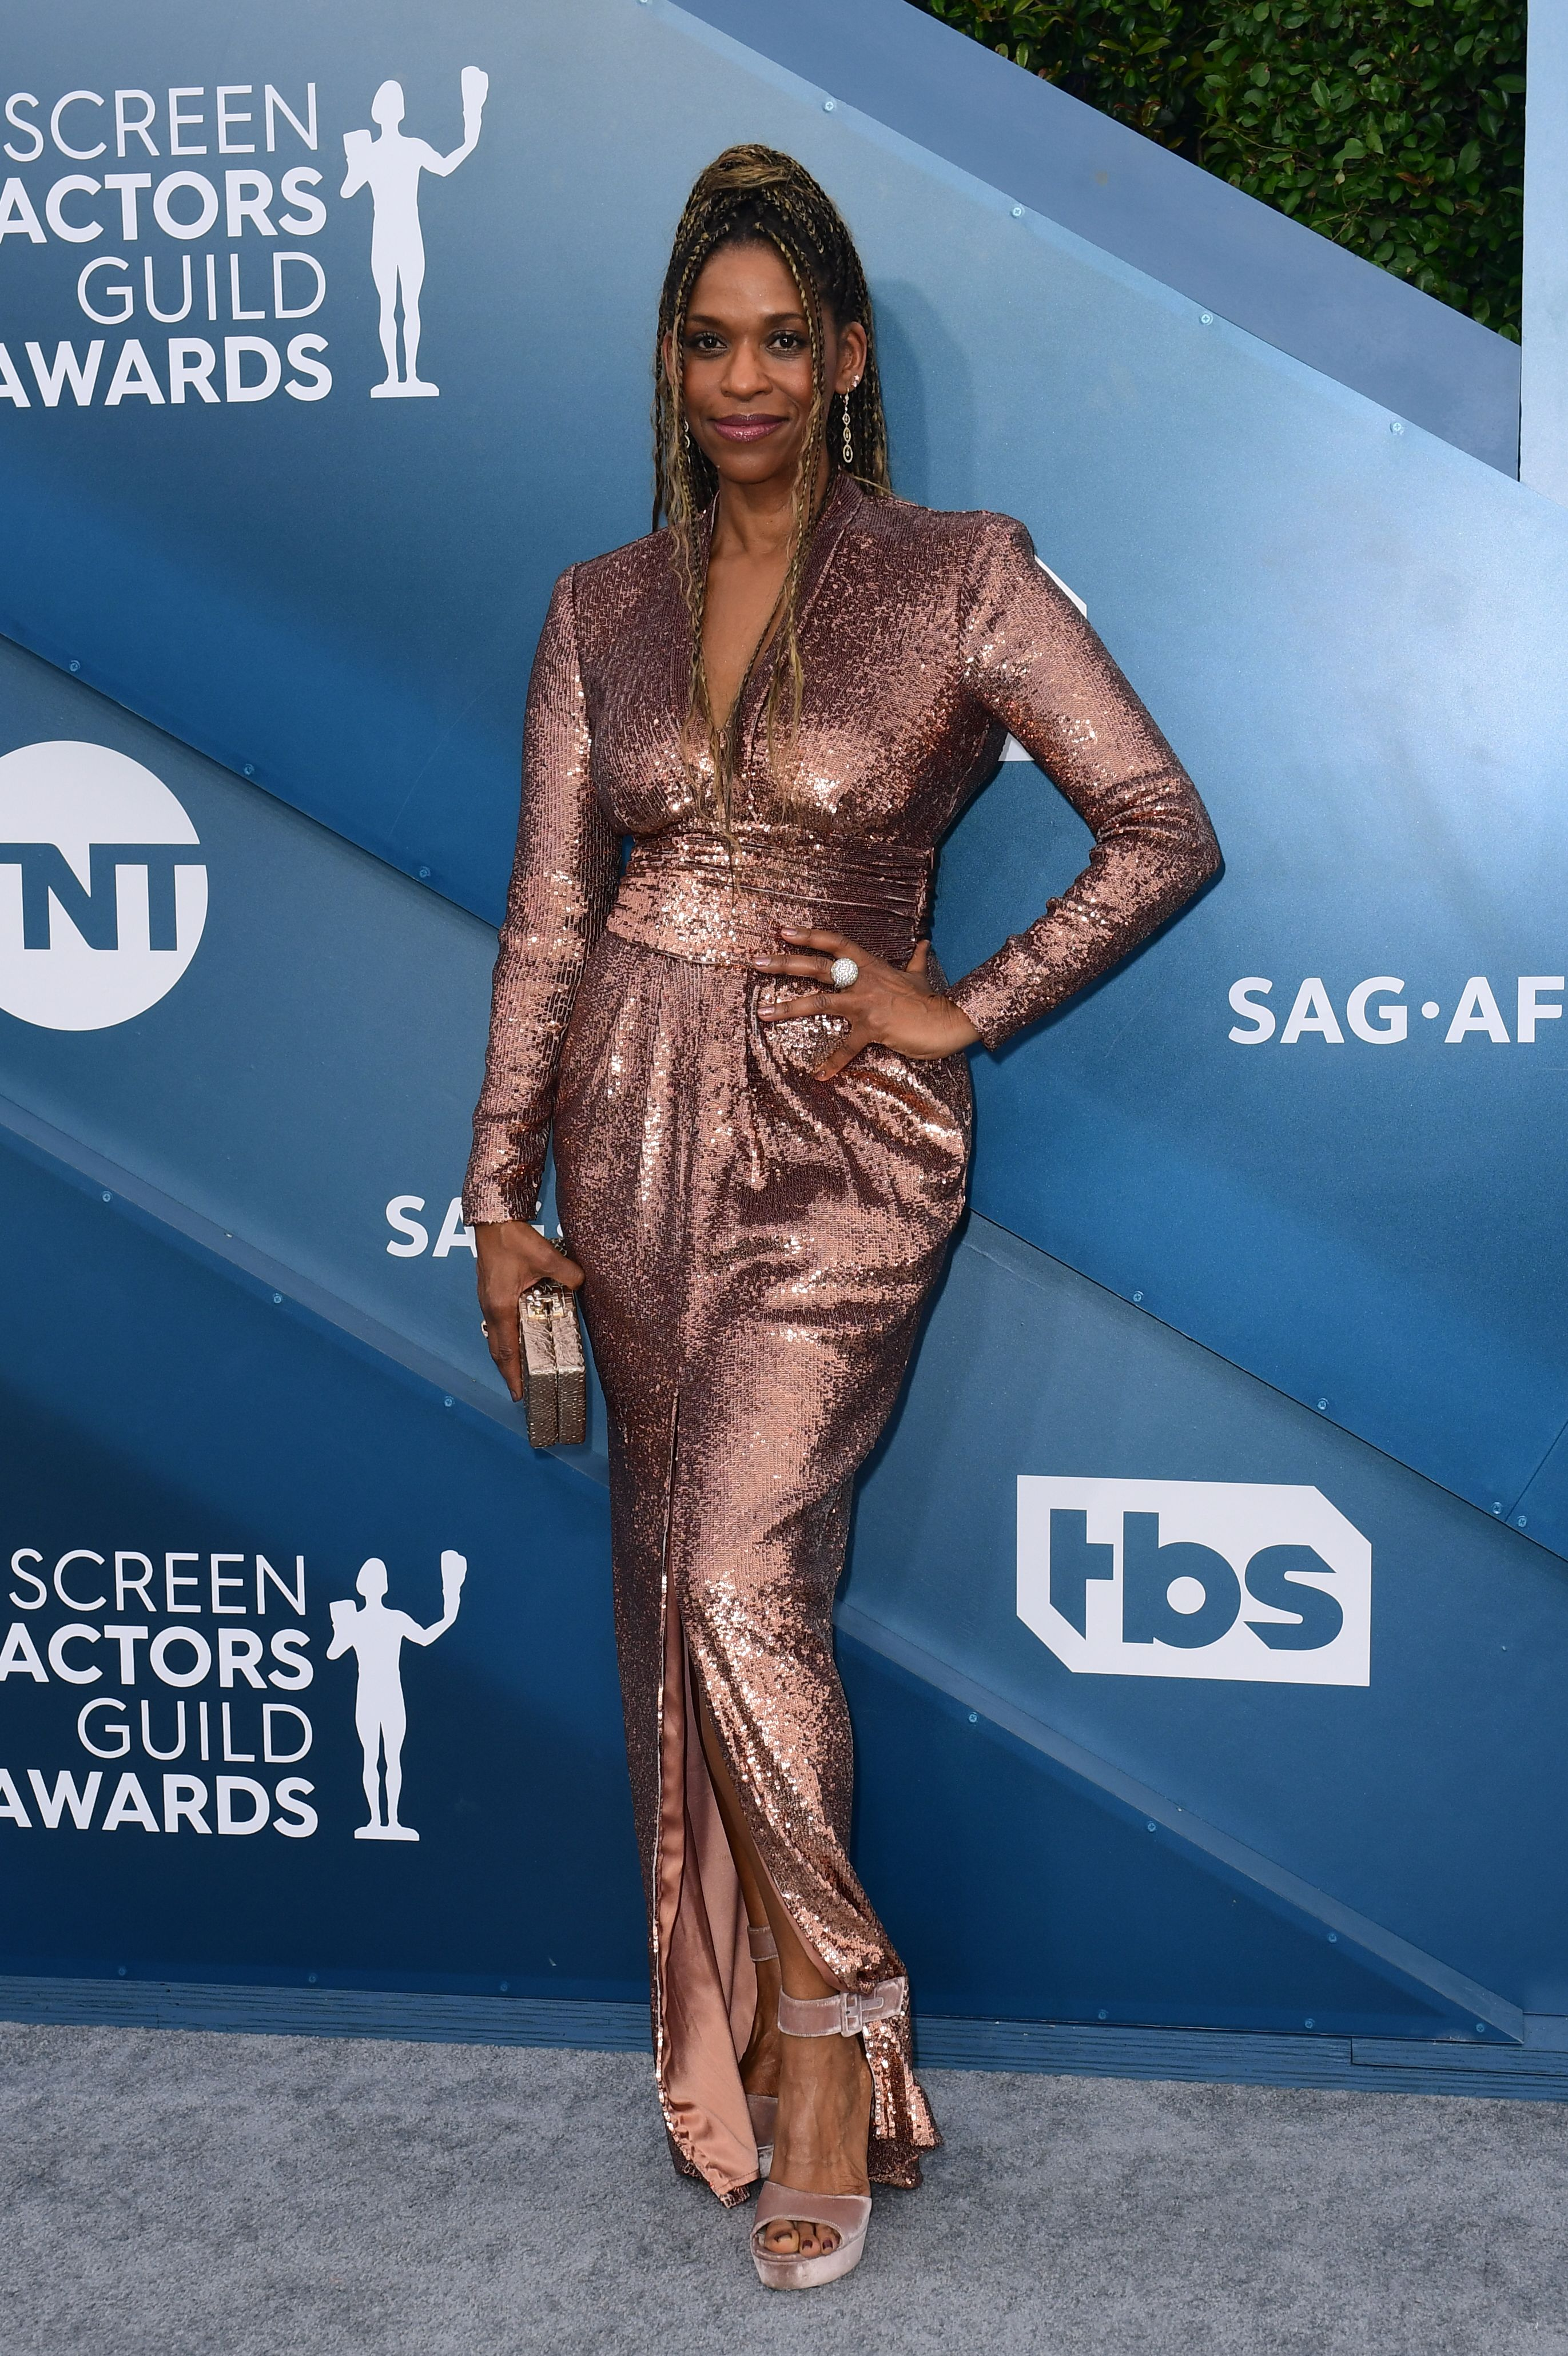 US actress Merrin Dungey arrives for the 26th Annual Screen Actors Guild Awards at the Shrine Auditorium in Los Angeles on January 19, 2020. (Photo by FREDERIC J. BROWN / AFP) (Photo by FREDERIC J. BROWN/AFP via Getty Images)